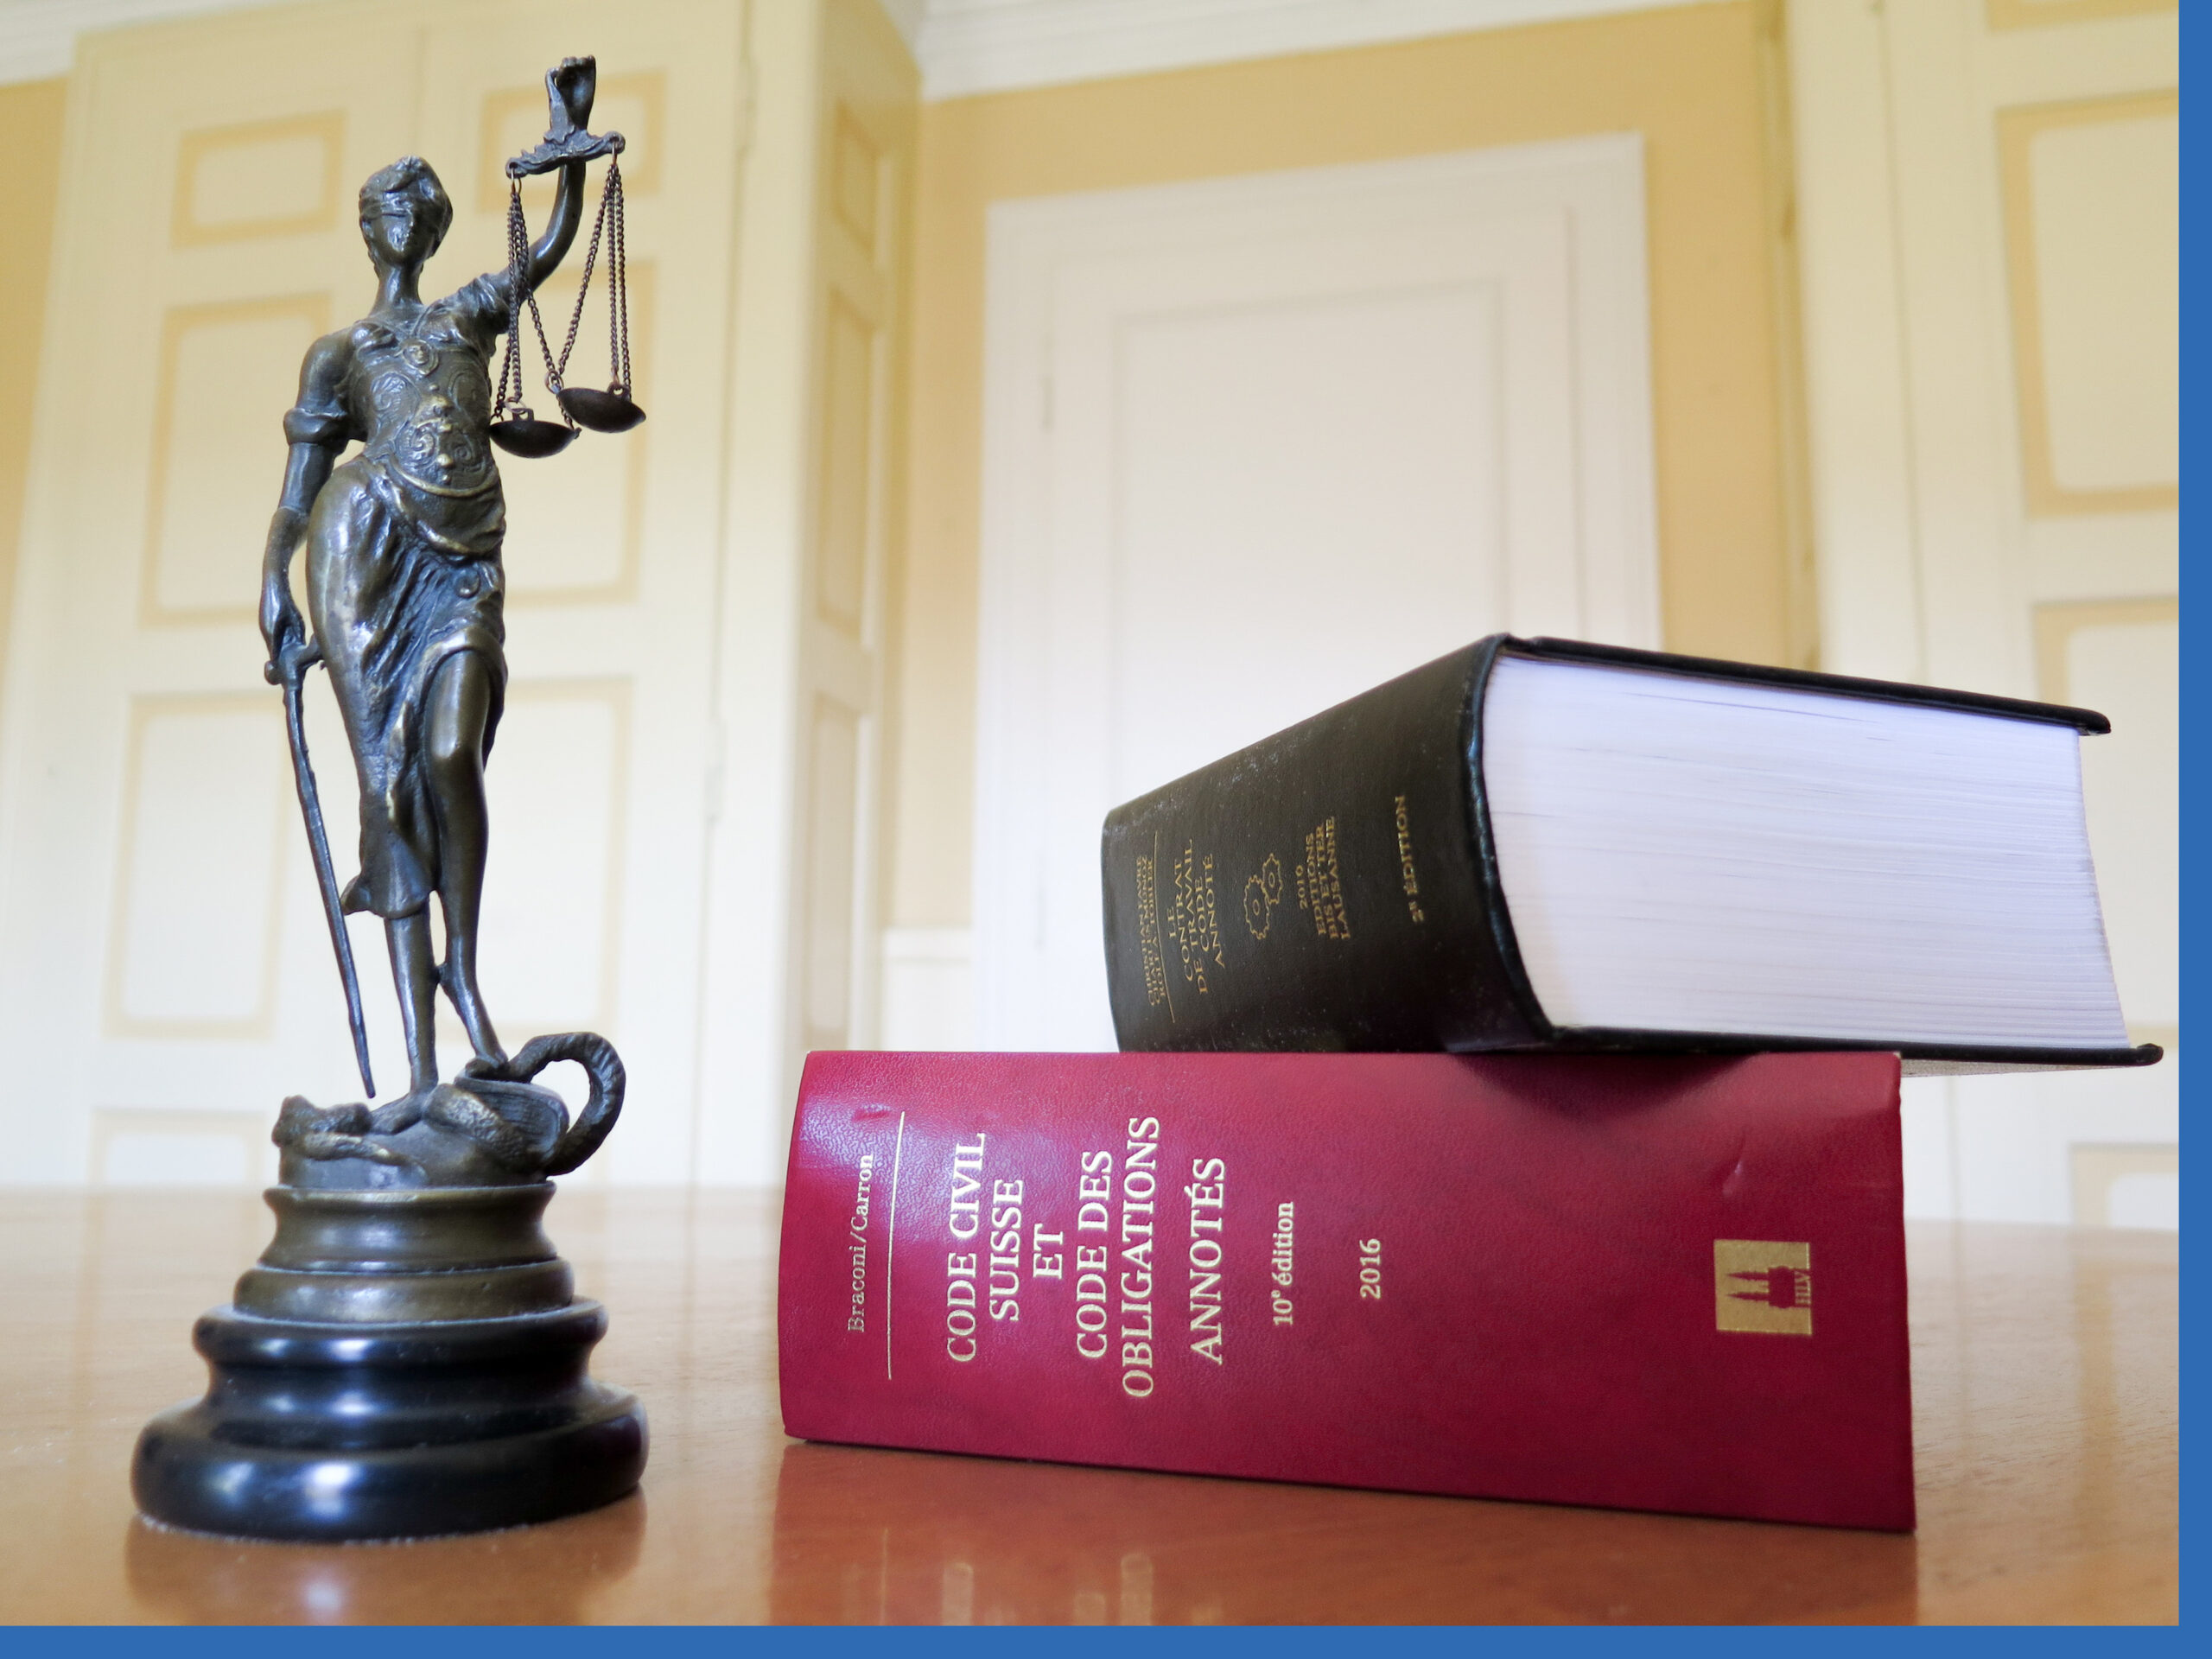 Employment Law - Businesses Switching to Temporary Labor Due to Legal Regulations